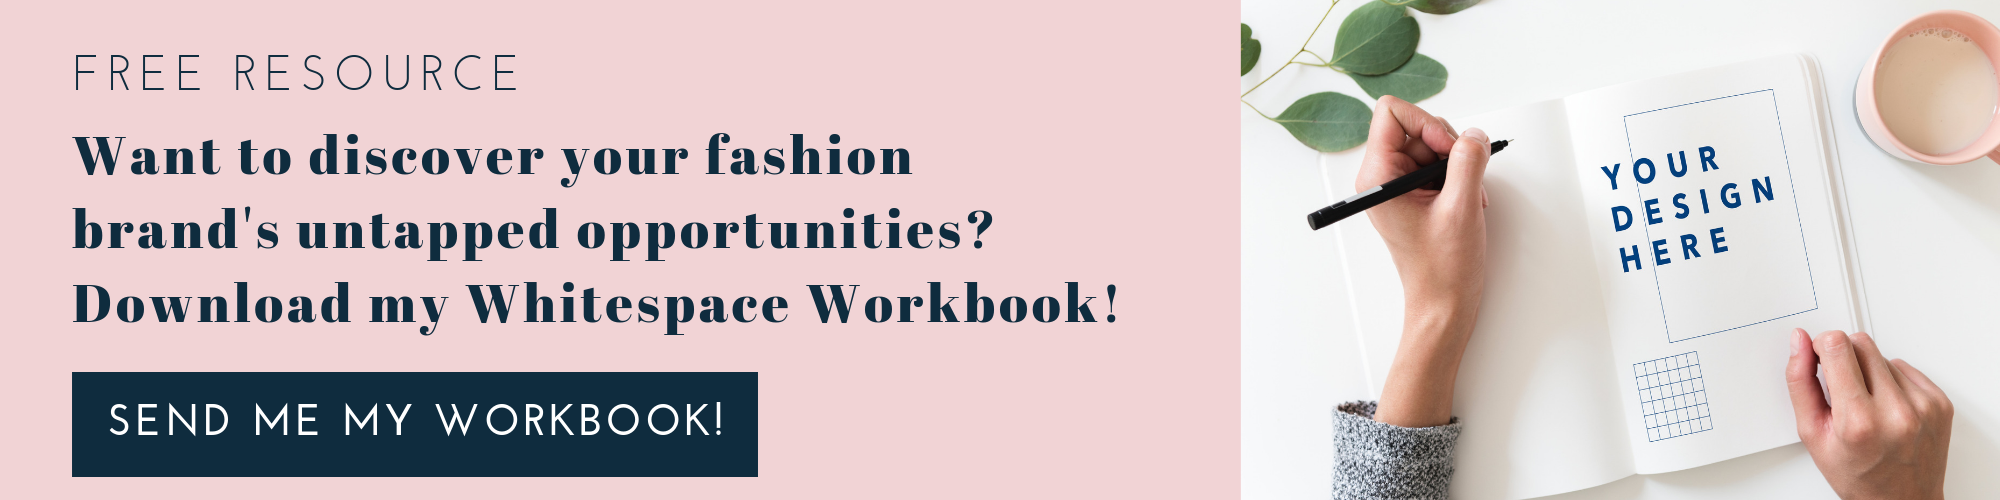 Discover your fashion brand's untapped opportunities with my Whitespace Workbook